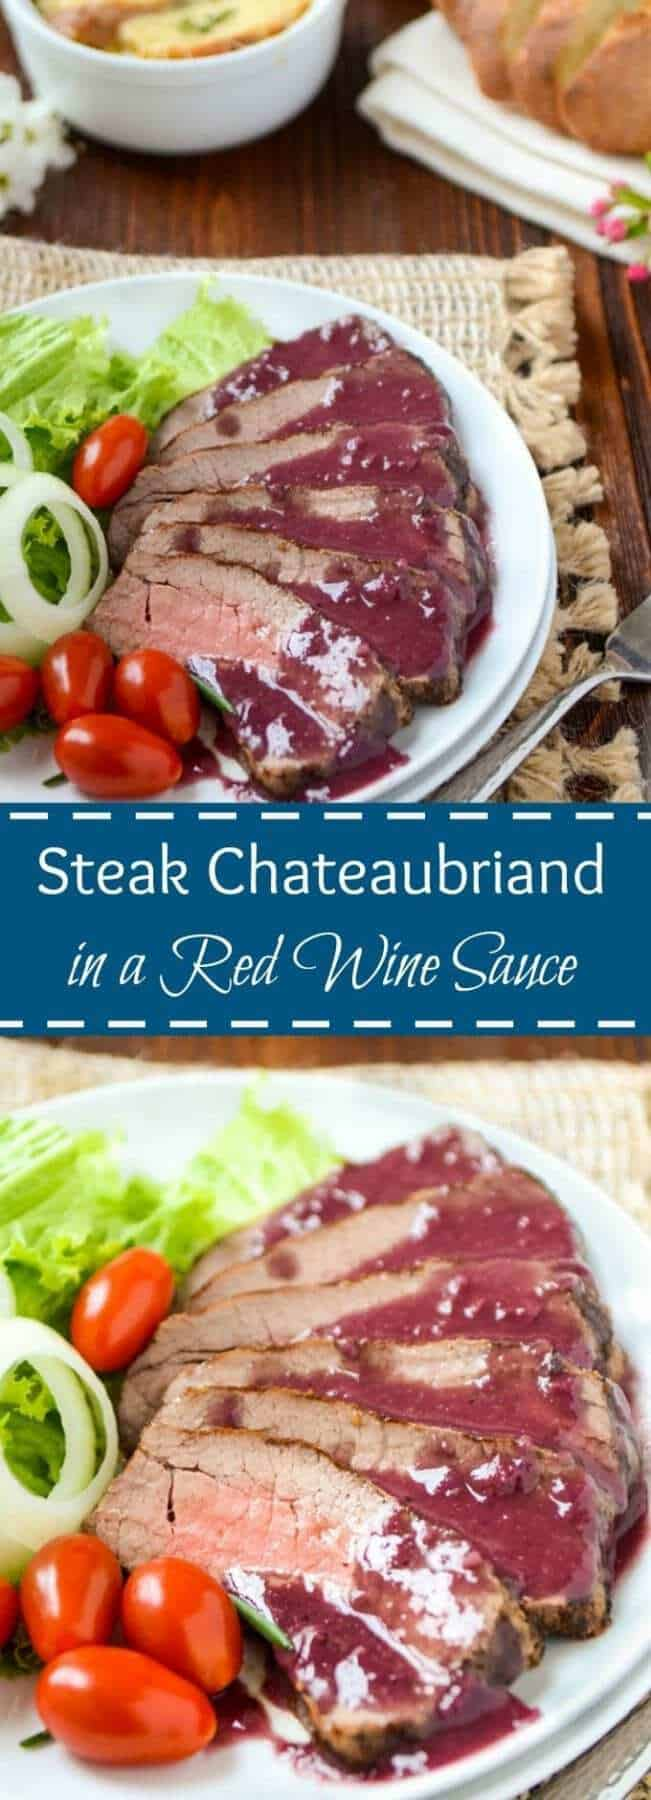 Classic French Recipes that include Steak Chateaubriand And French Onion Soup